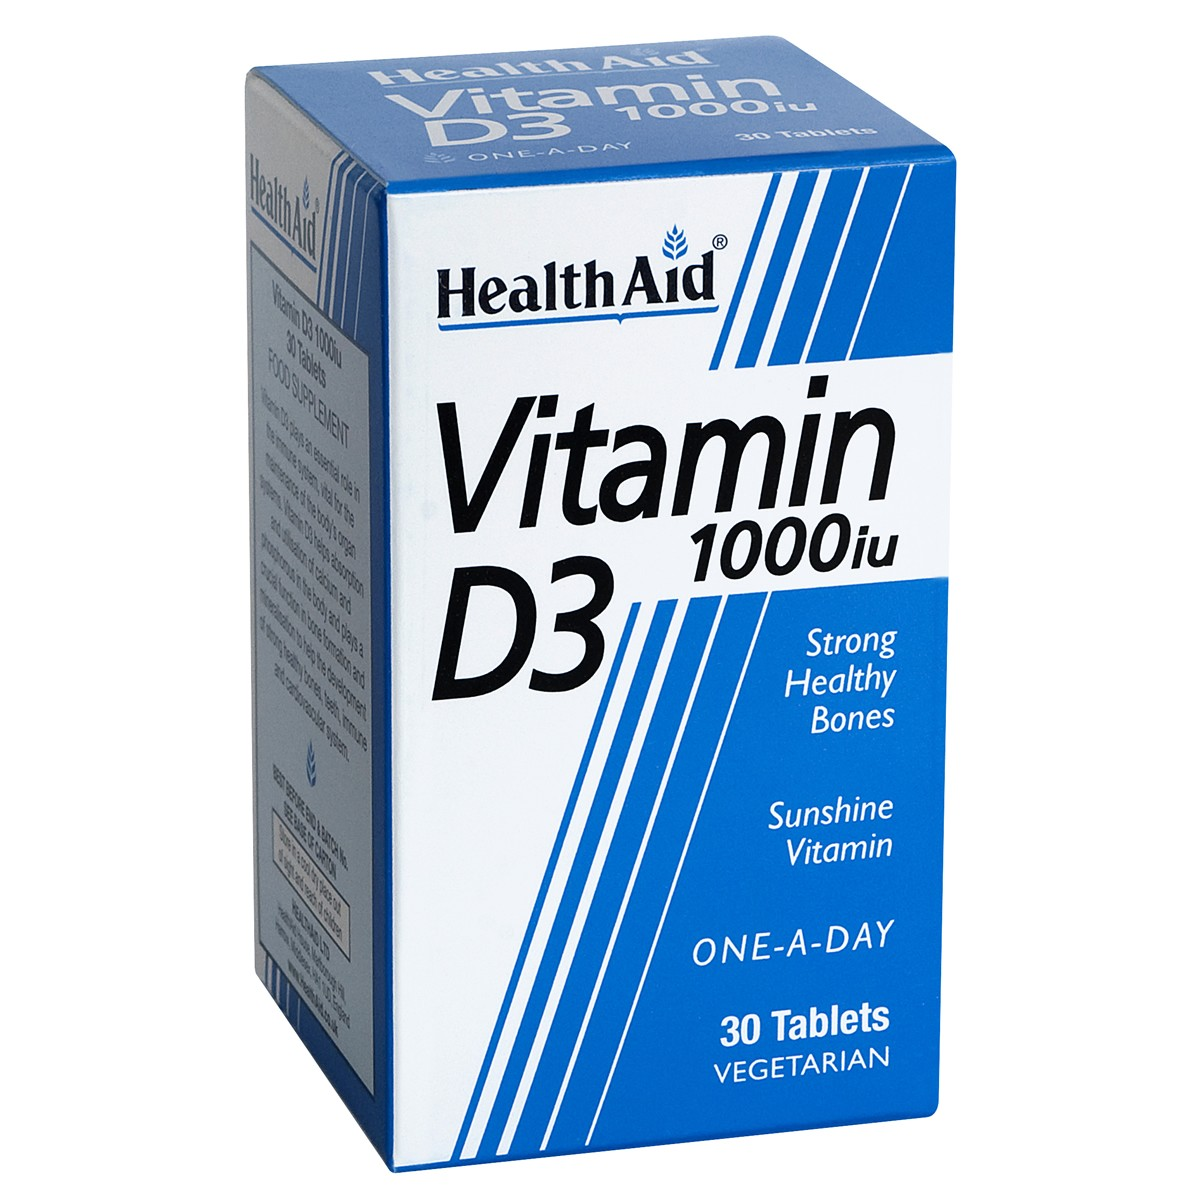 HealthAid Vitamin D3 1000iu Tablets